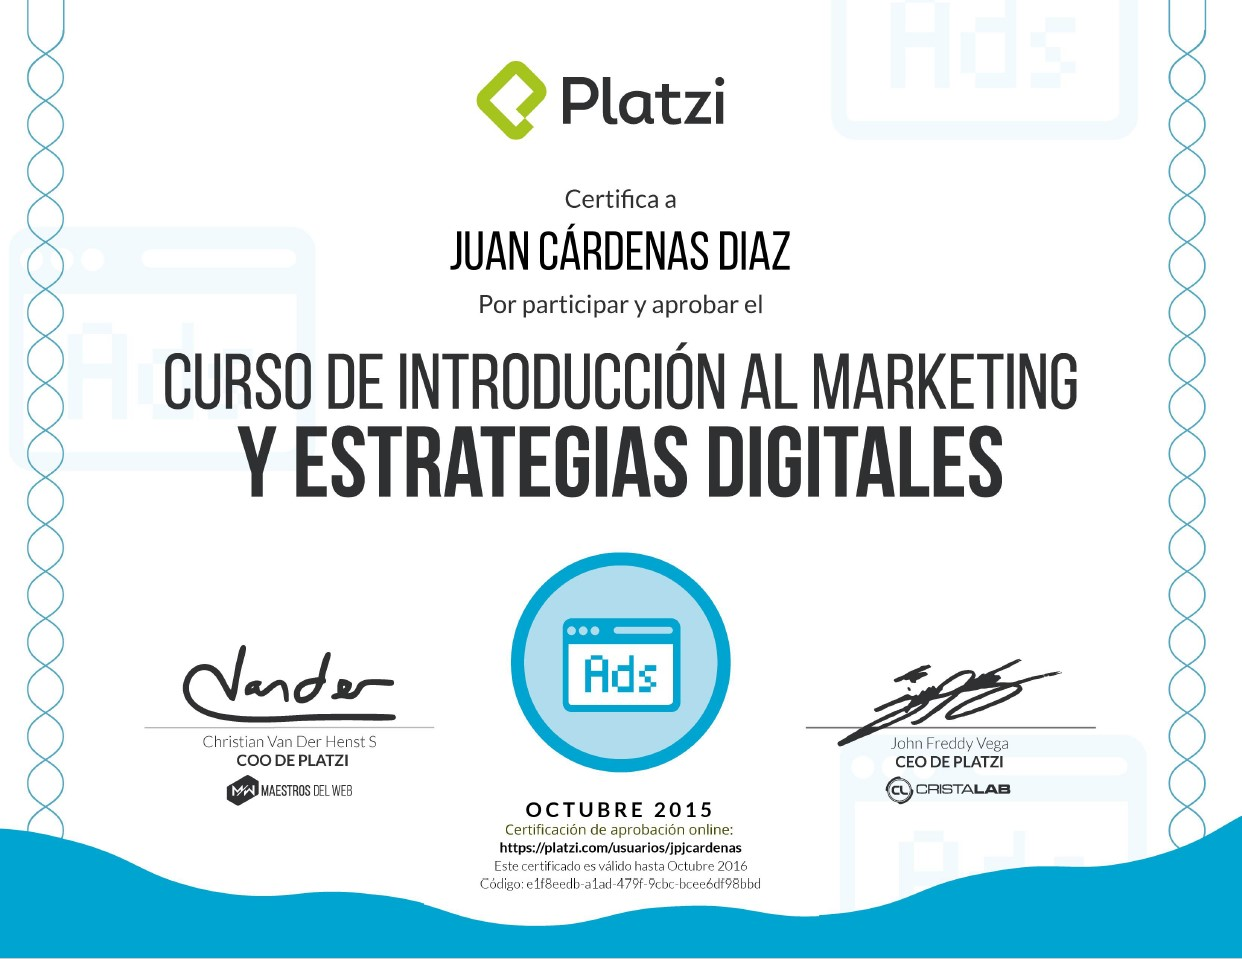 Curso de Introducción al Marketing y Estrategias Digitales